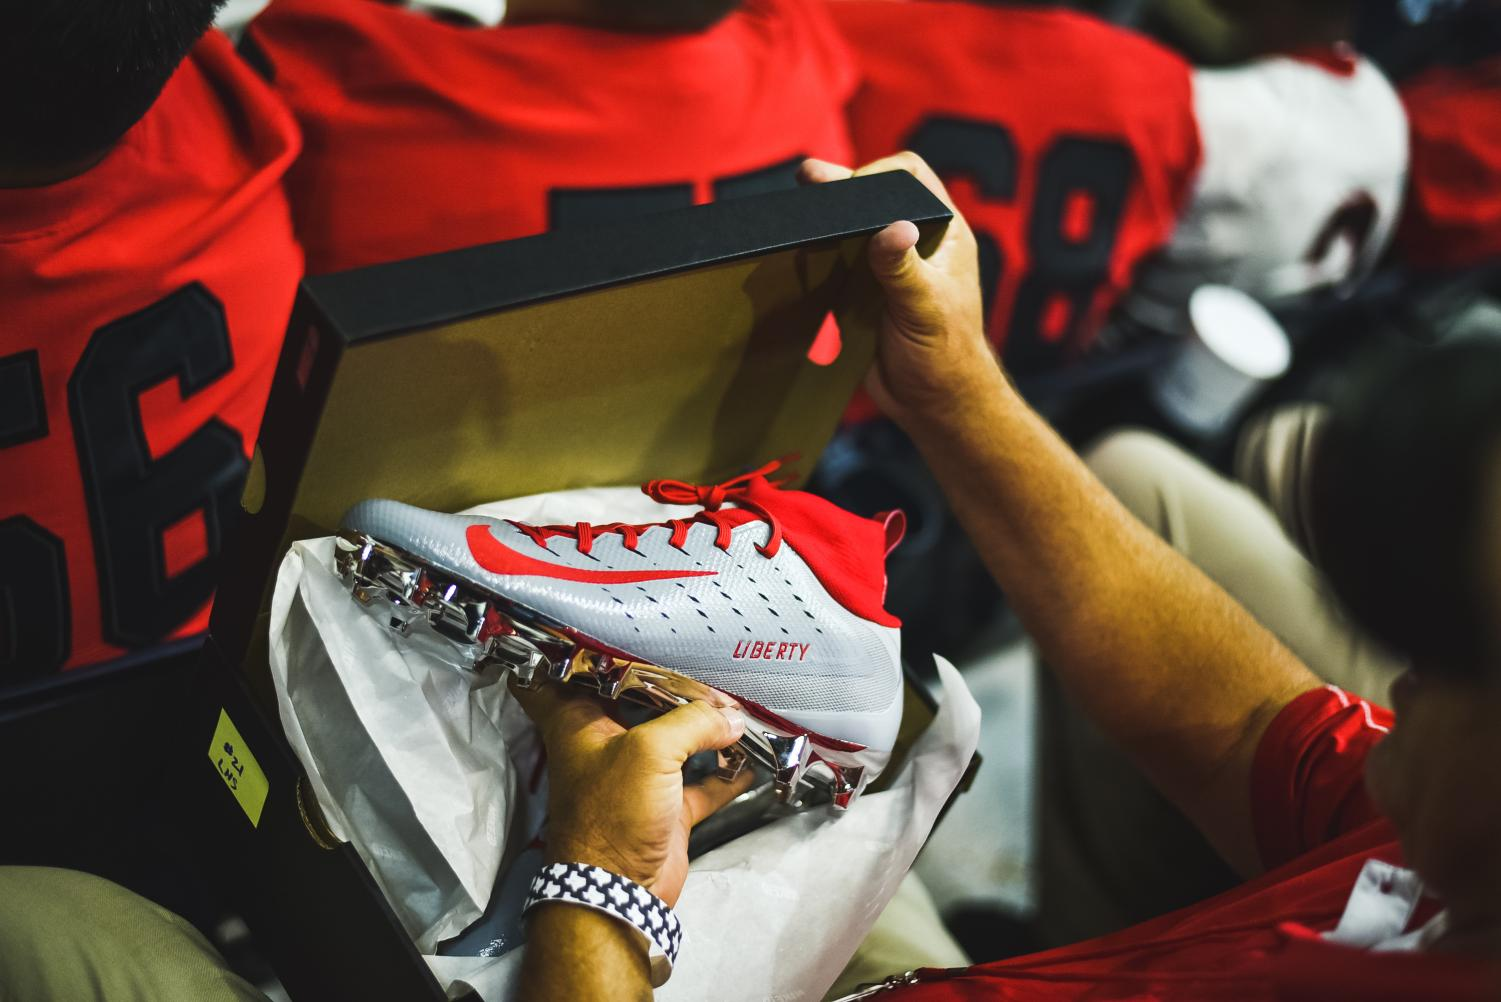 Head+football+coach+Chris+Burtch+holds+the+Liberty+custom+cleats+made+by+Nike+for+each+Frisco+ISD+school.